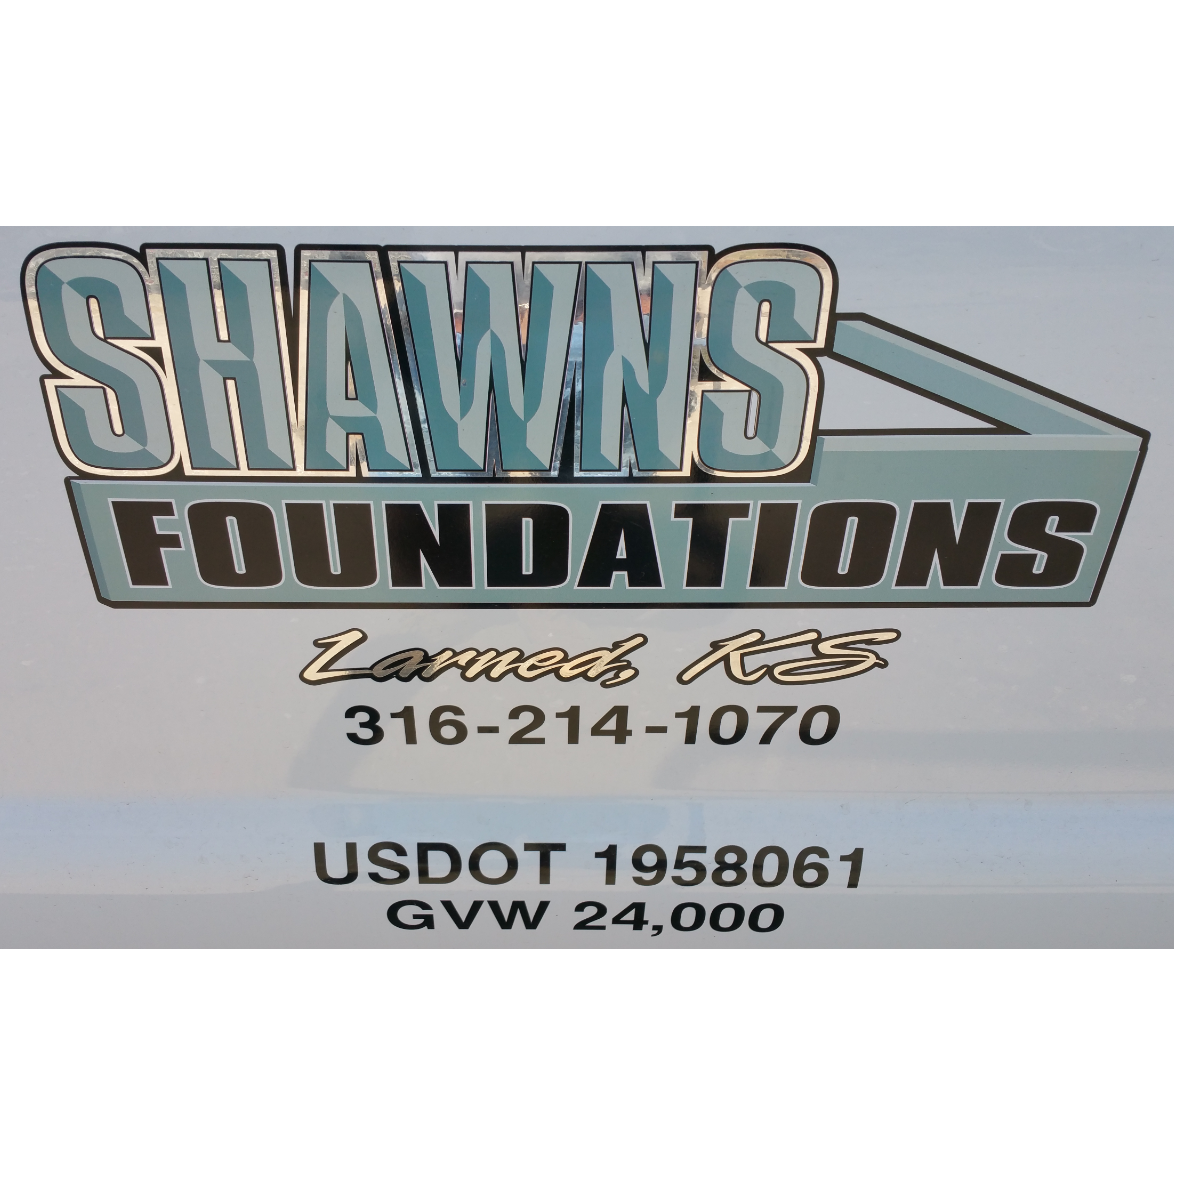 Shawns Foundations Inc.